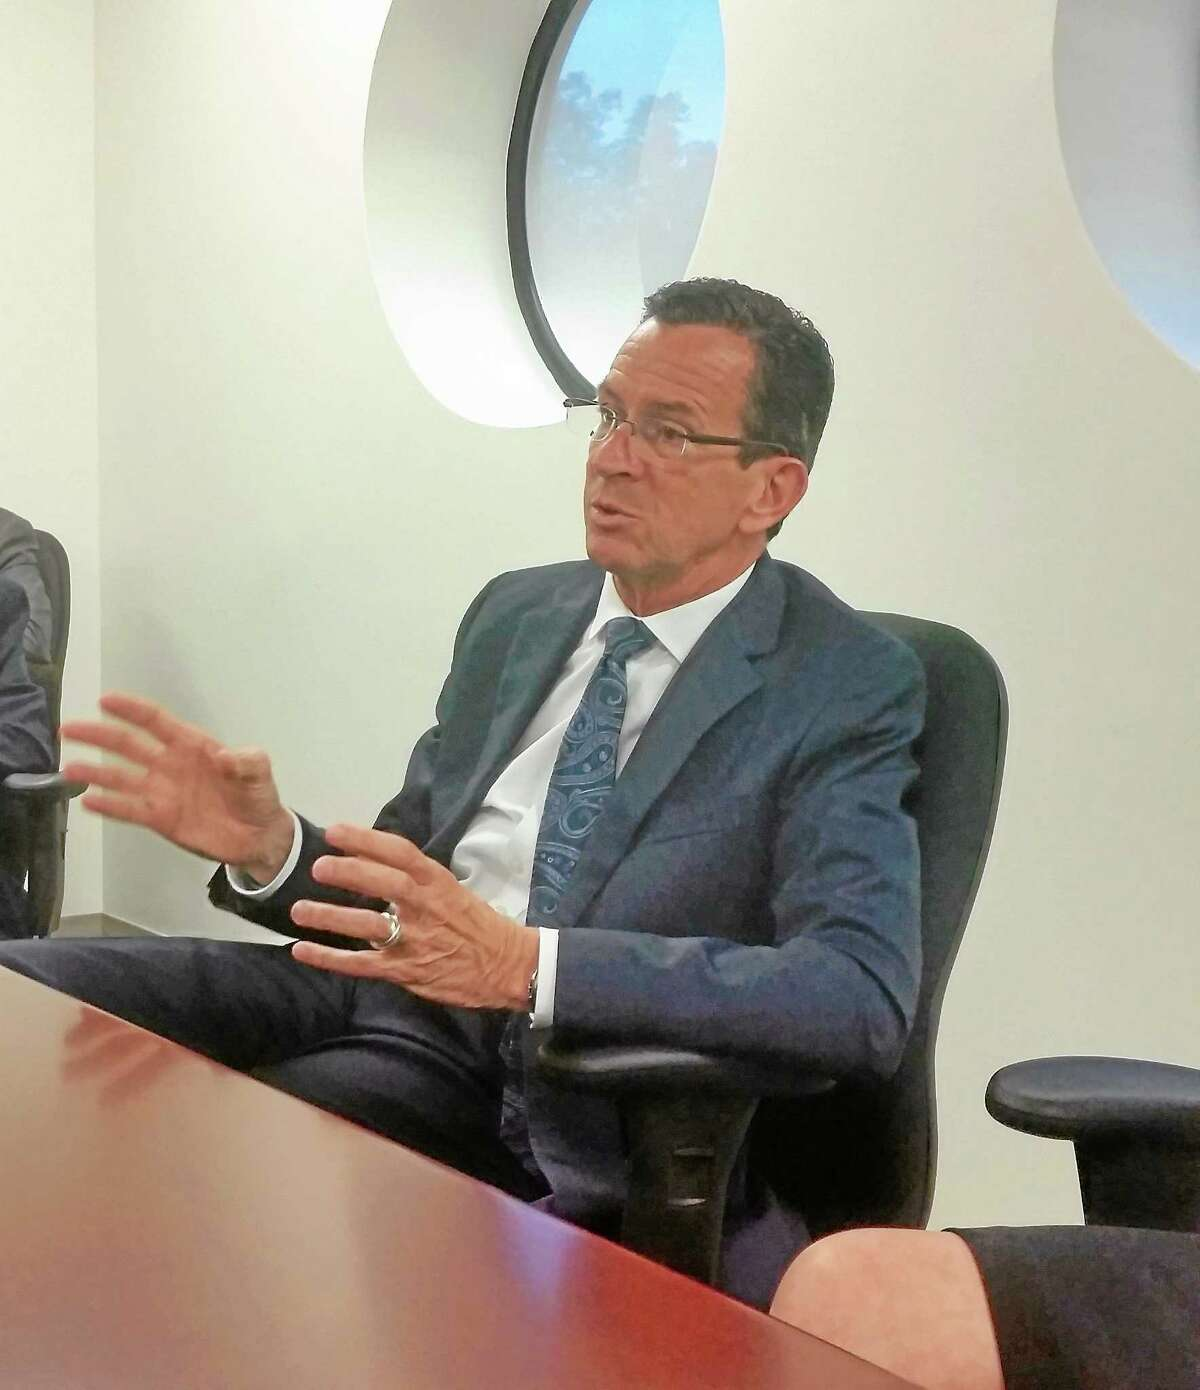 Gov. Dannel Malloy, who is seeking a second term, makes a point during a meeting with the New Haven Register editorial board Monday.